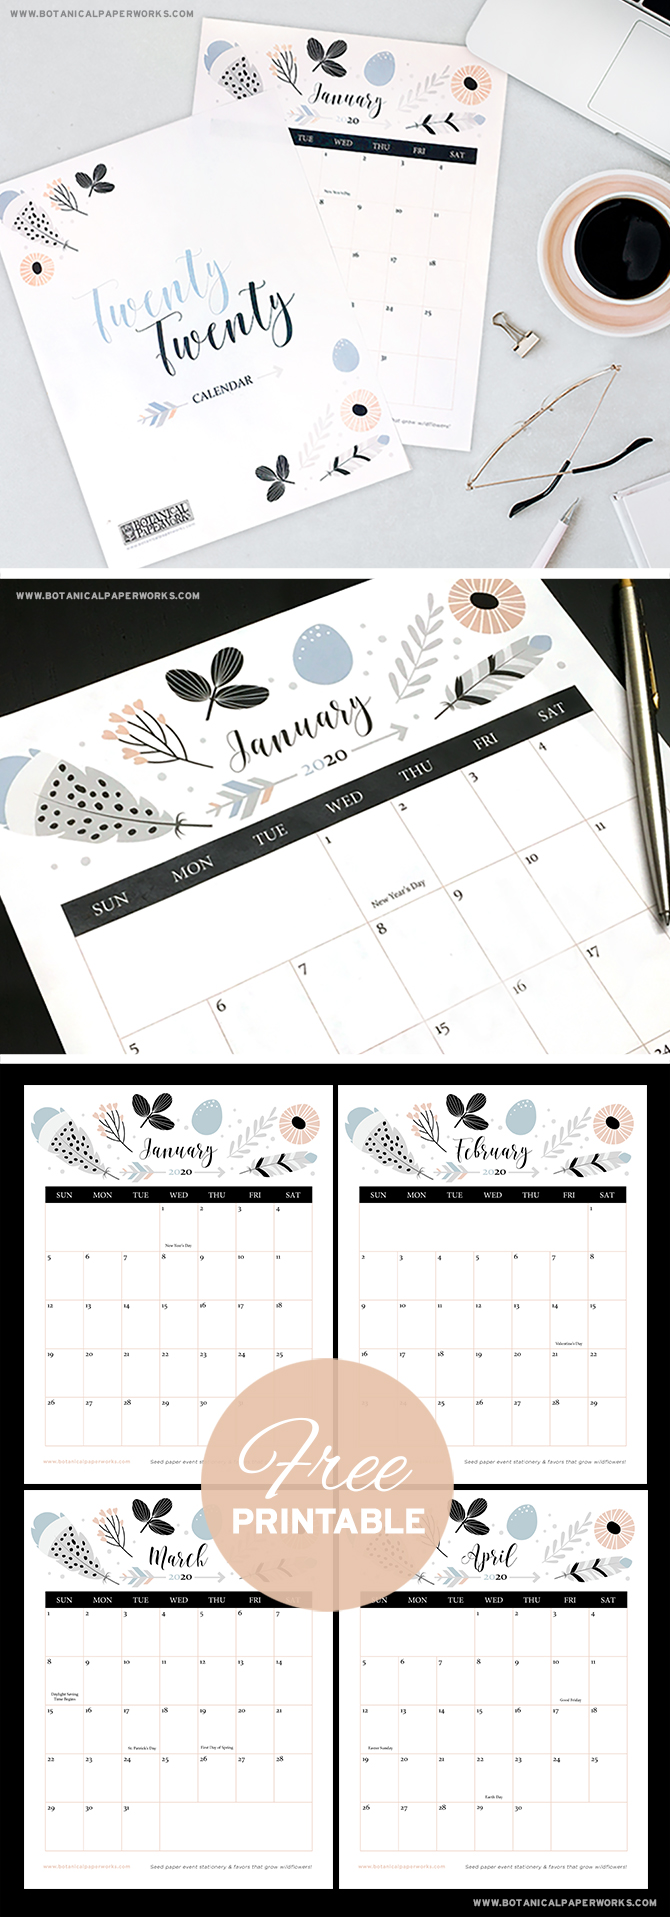 Download and print this stylish Boho Chic calendar to keep track of all your events and appointments in 2020.